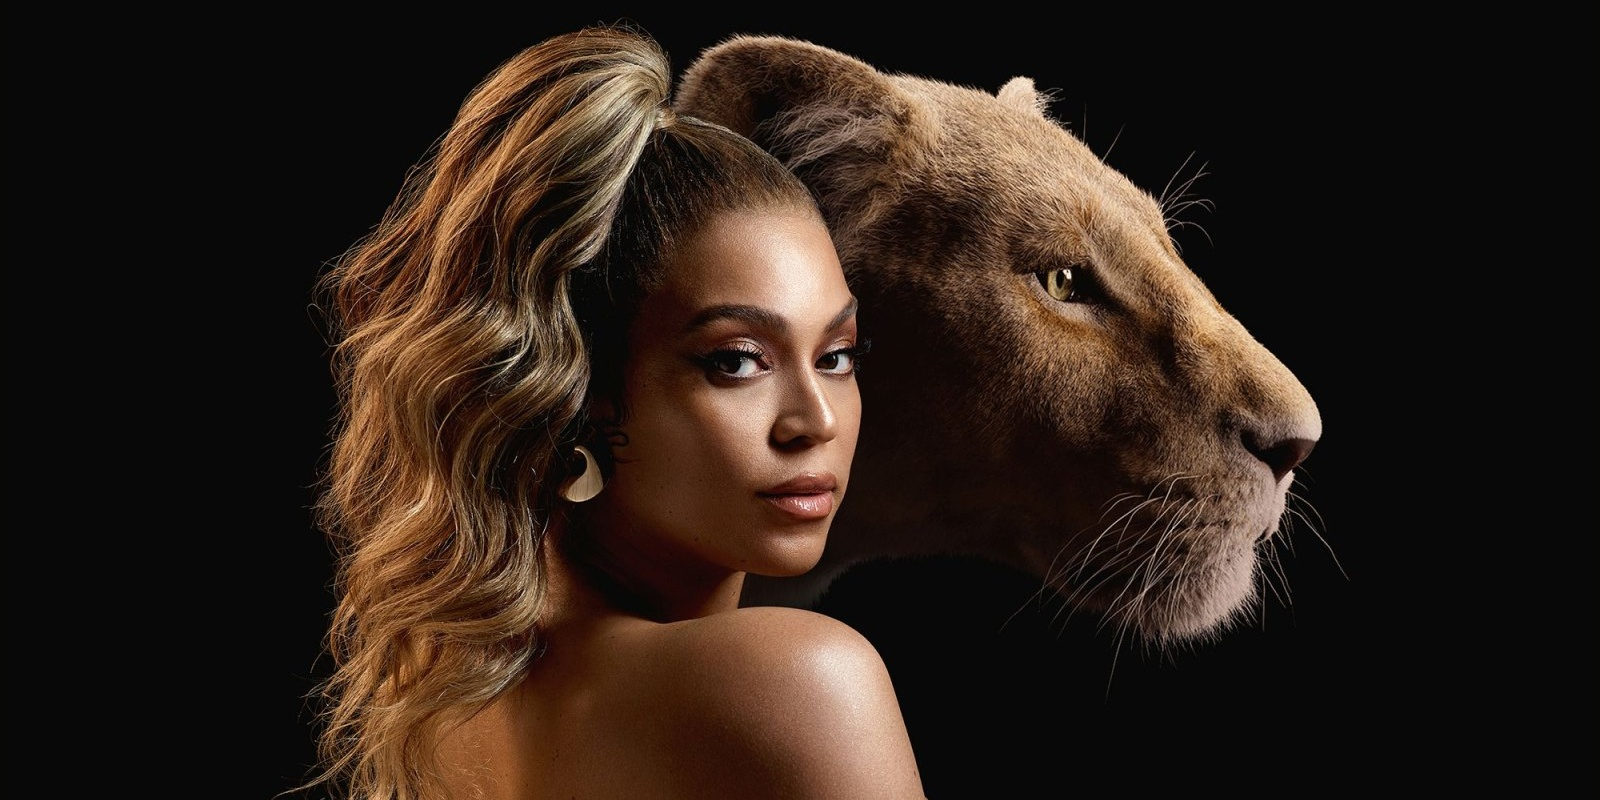 Beyoncé reveals track list for The Lion King: The Gift album – Kendrick Lamar, Childish Gambino and more to feature